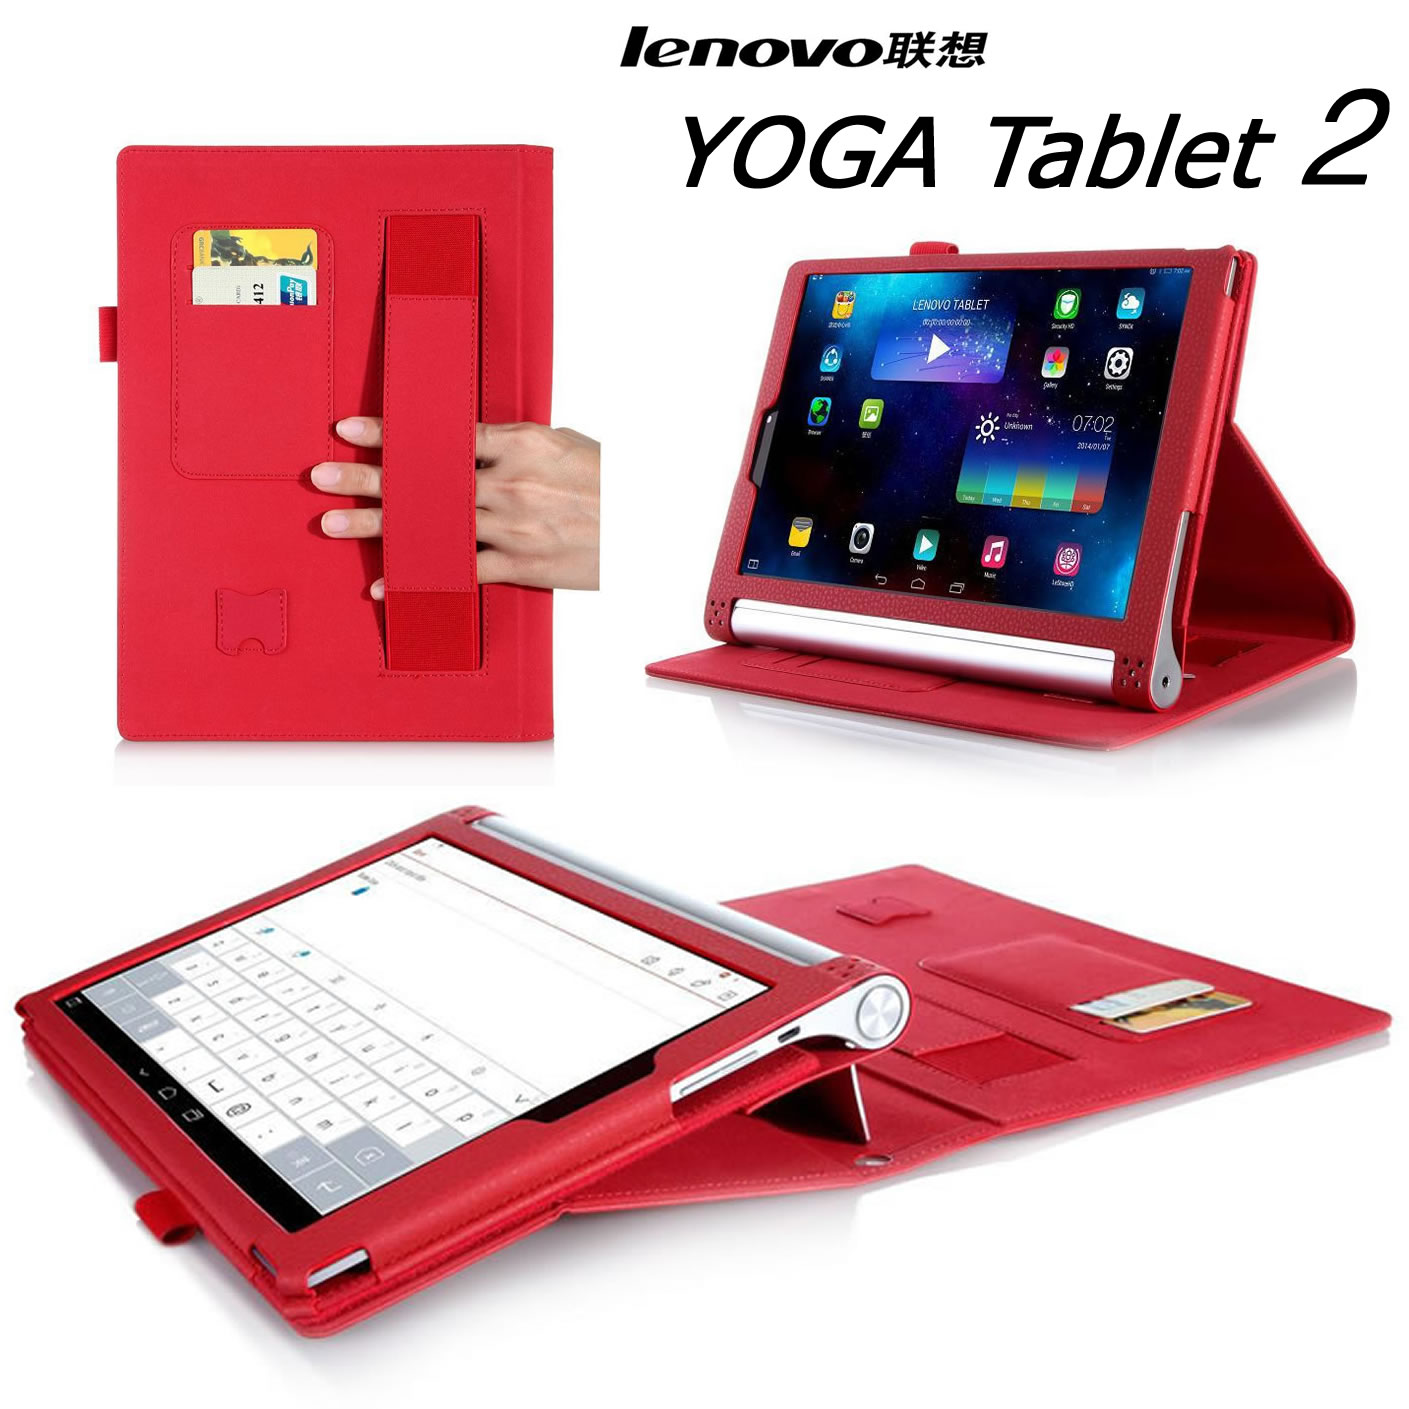 lenovo yoga tablet 2 830F/LC yaga 2 830F leather8 Case Casing Cover